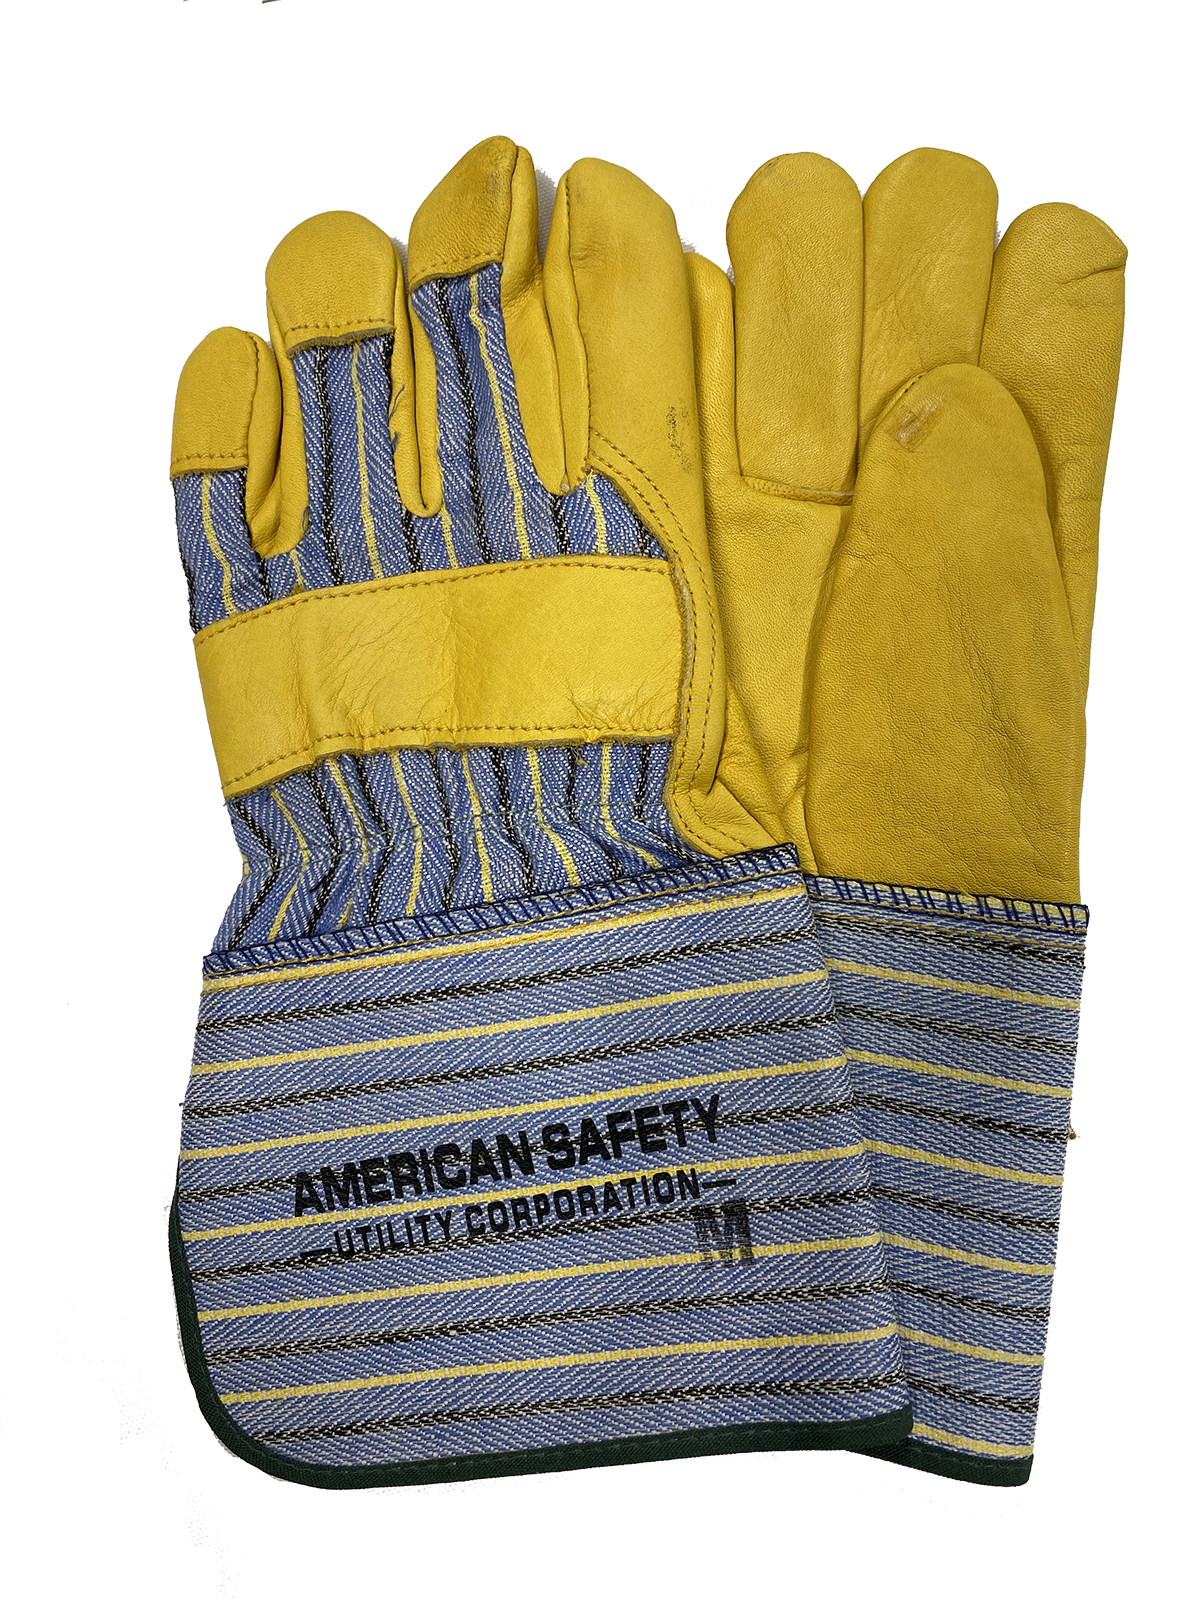 "Top Grain Leather Palm Gloves 2"" cuff, Large. American Safety Logo."